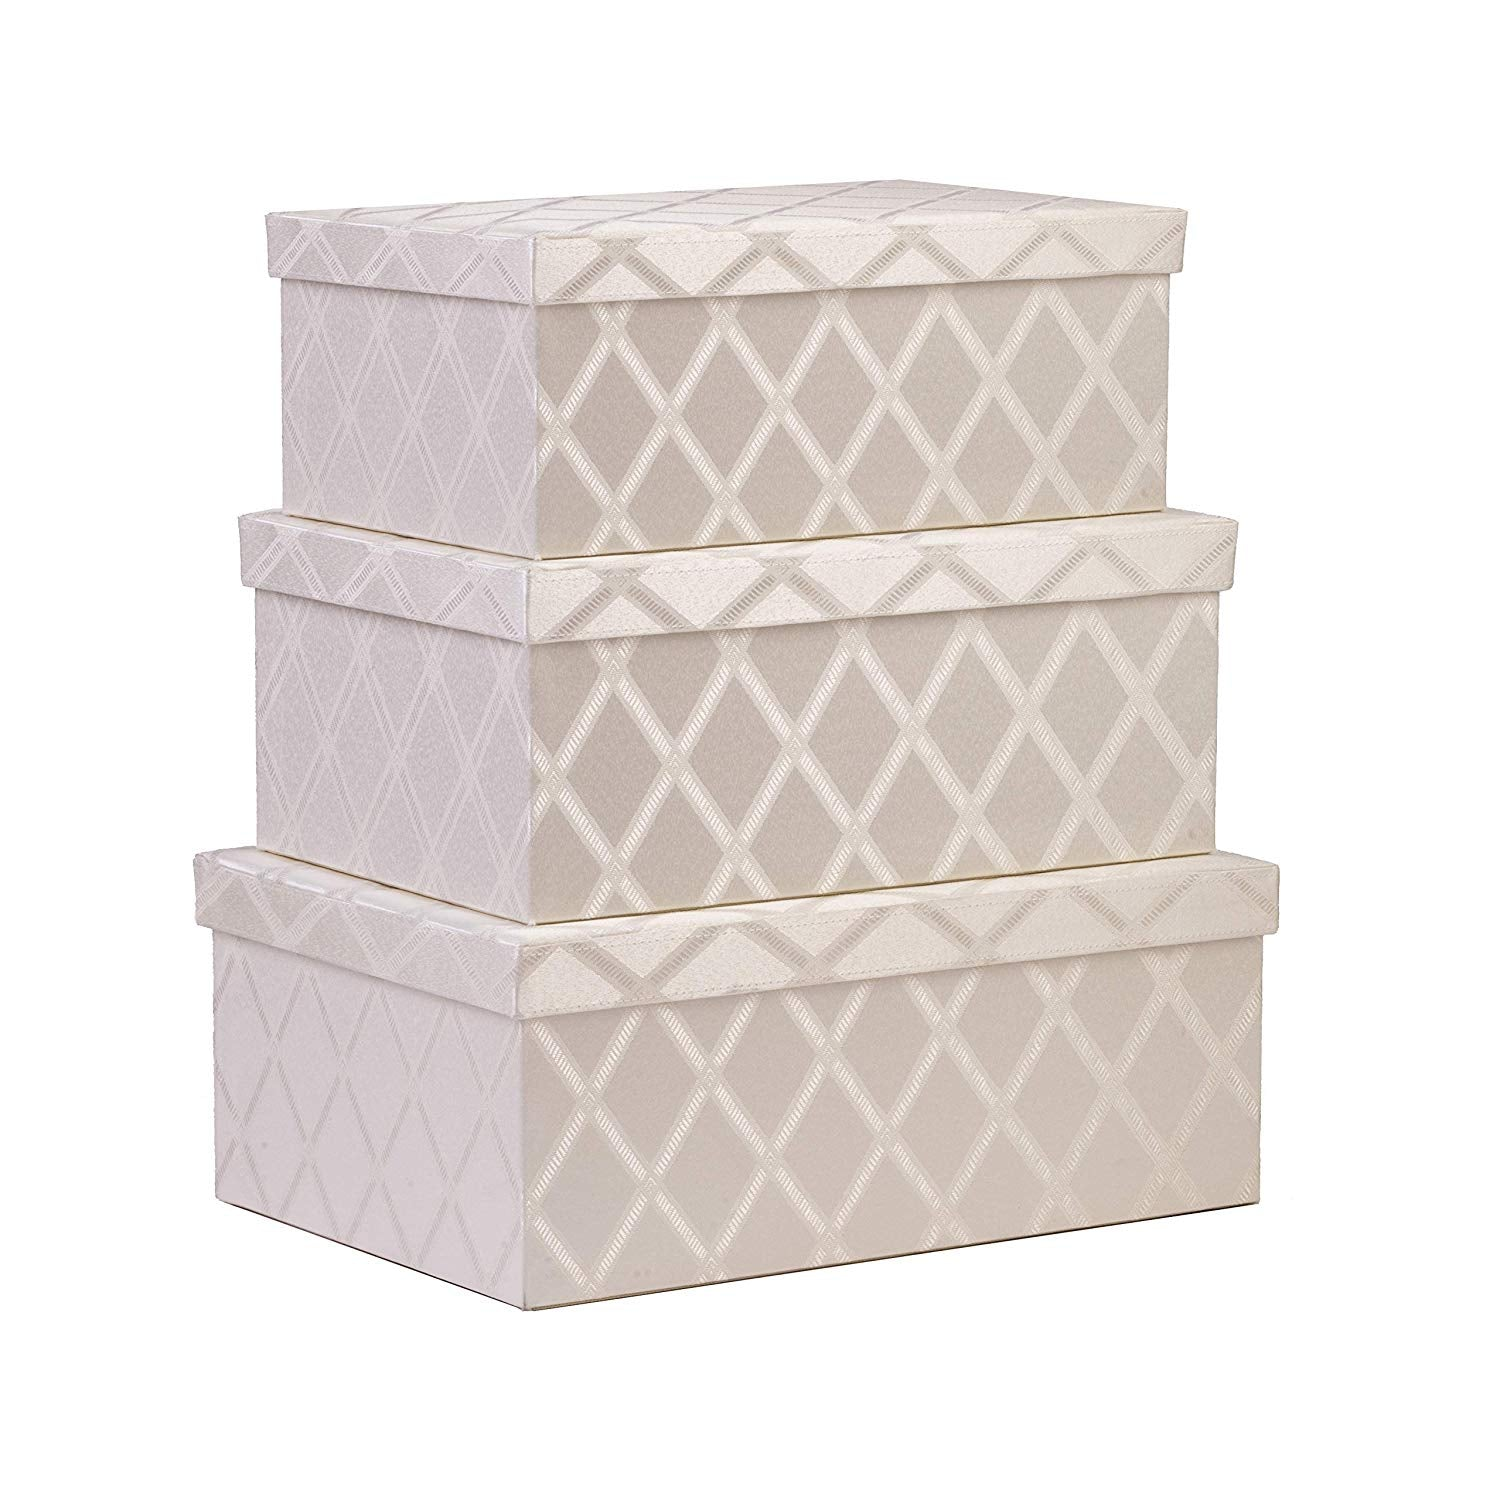 Toys Storage Bins 3-pcs Set - Fabric Decorative Storage Boxes with Lids - Shelf Closet Organizer Basket - Decor Nesting Boxes - Stylish Gift Boxes with Lids, Large/Medium/Small Sizes (Off White)